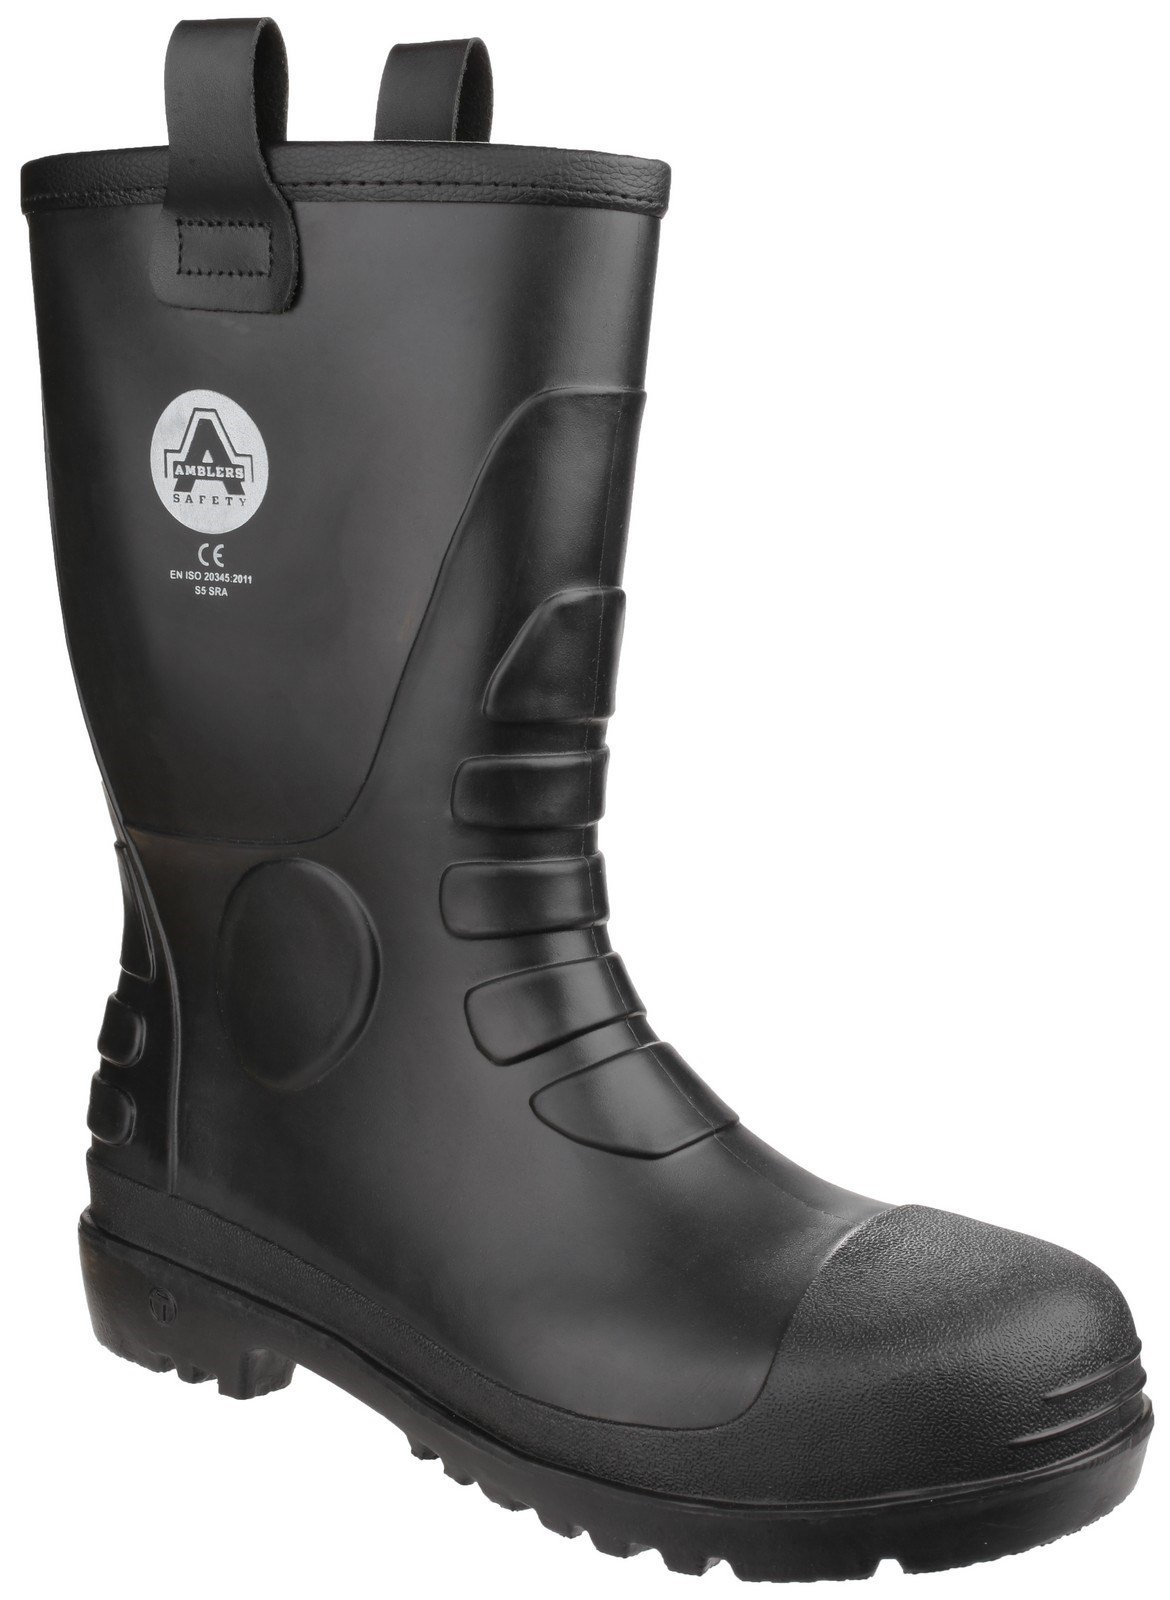 Amblers Unisex Safety Waterproof PVC Pull on Rigger Boot Black 24926 - Black 4